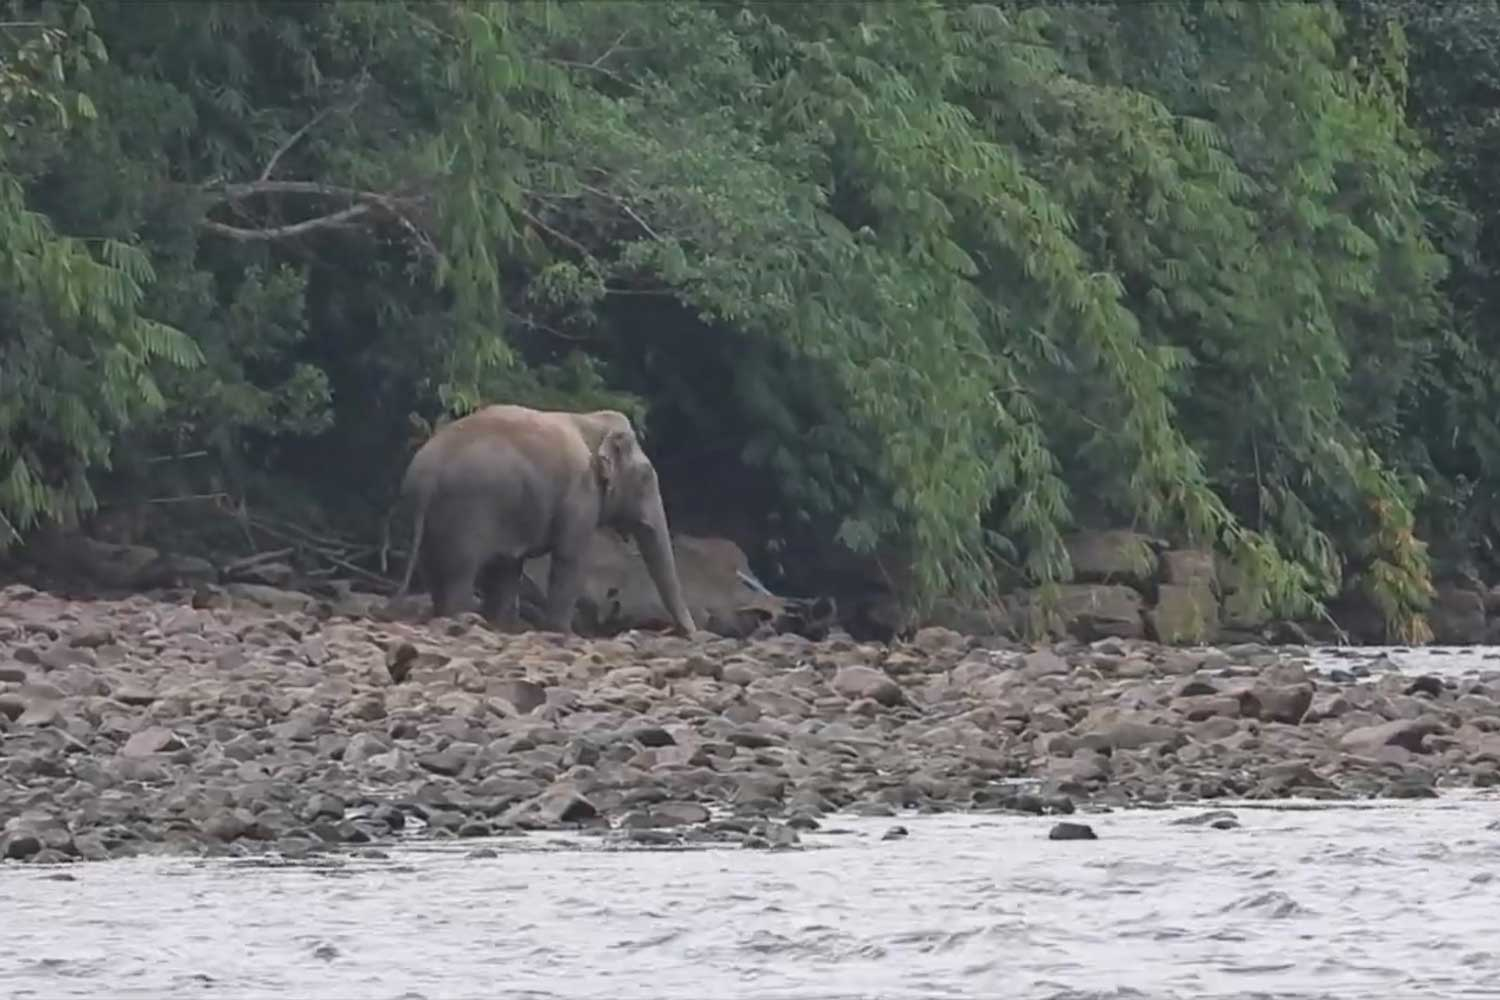 Patrol teams keep close watch on herd of wild elephants